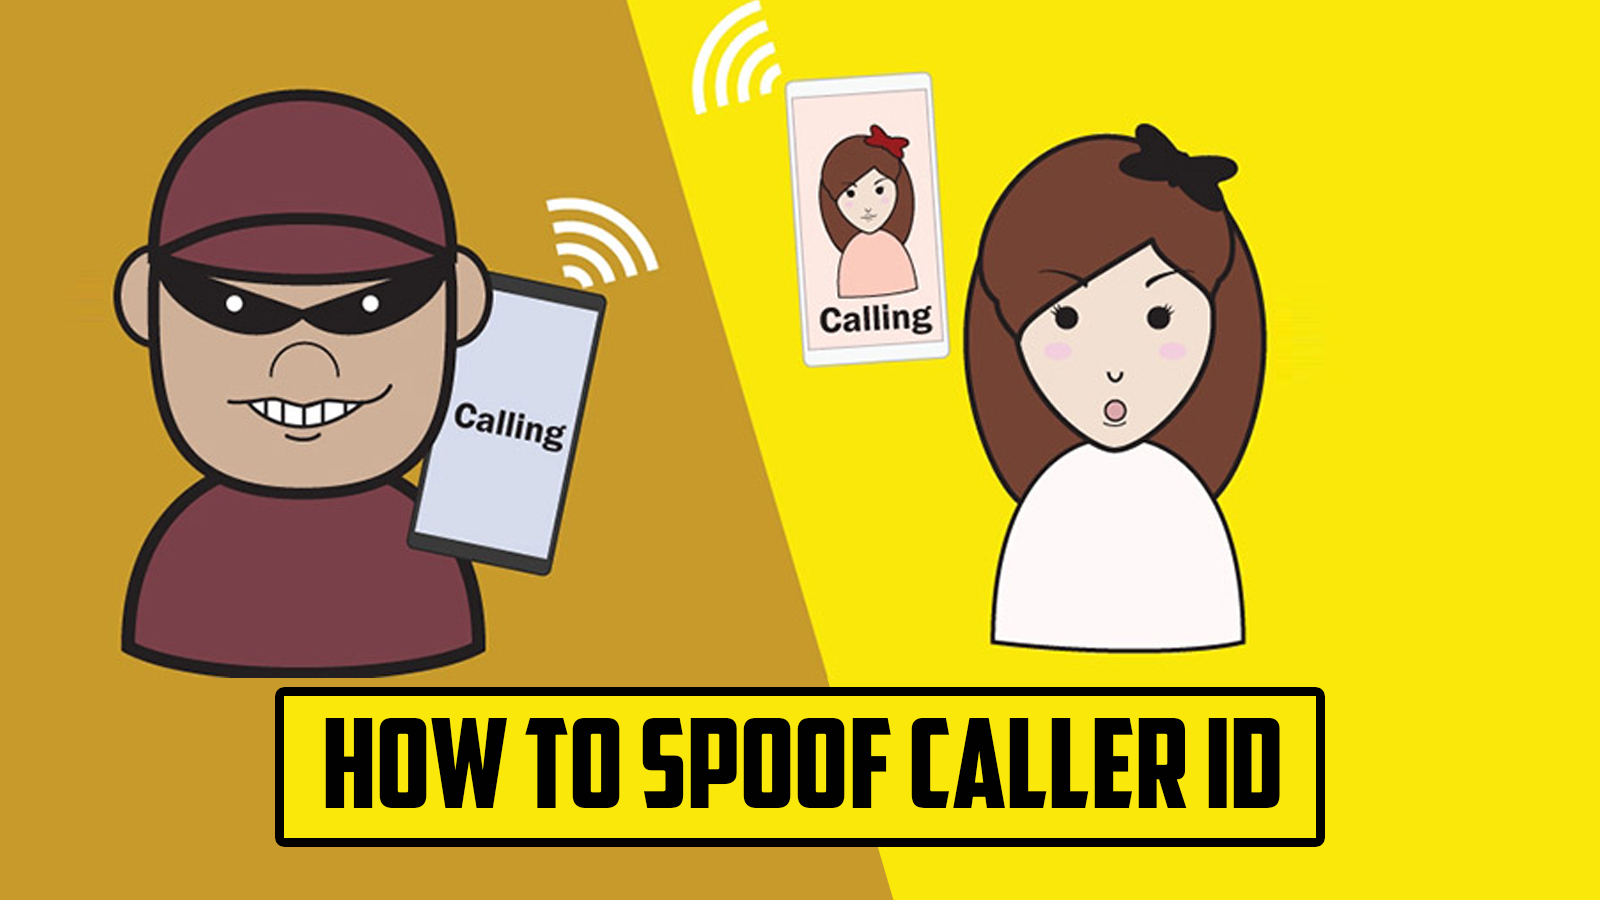 How To Spoof Caller ID | Never Ending Security